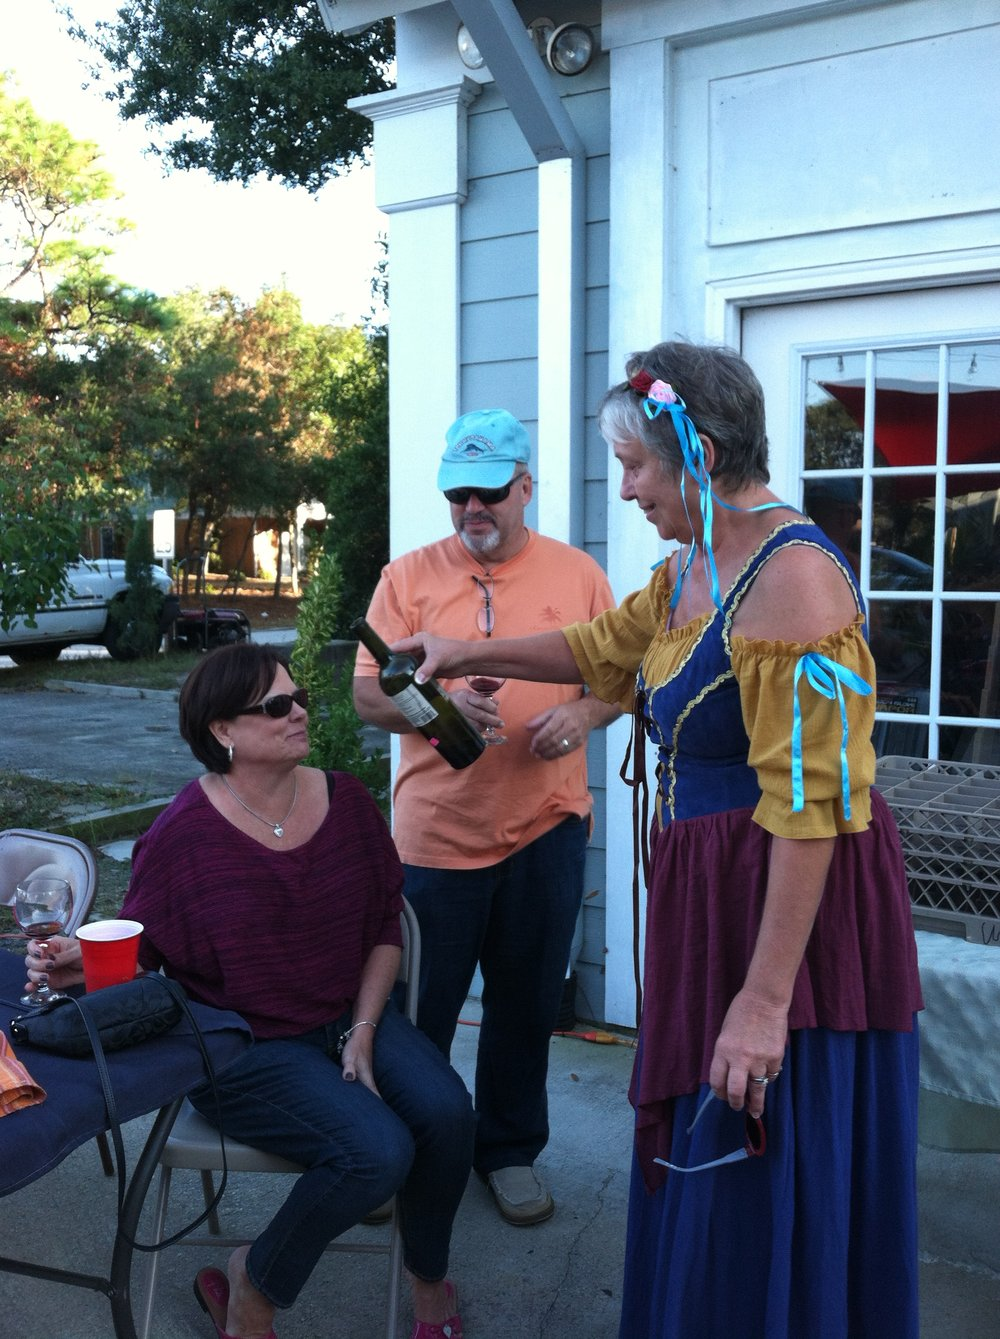 The owner of The Grape & Ale in Oak Island dressed in her German Oktoberfest attire and being a fabulous hostess!